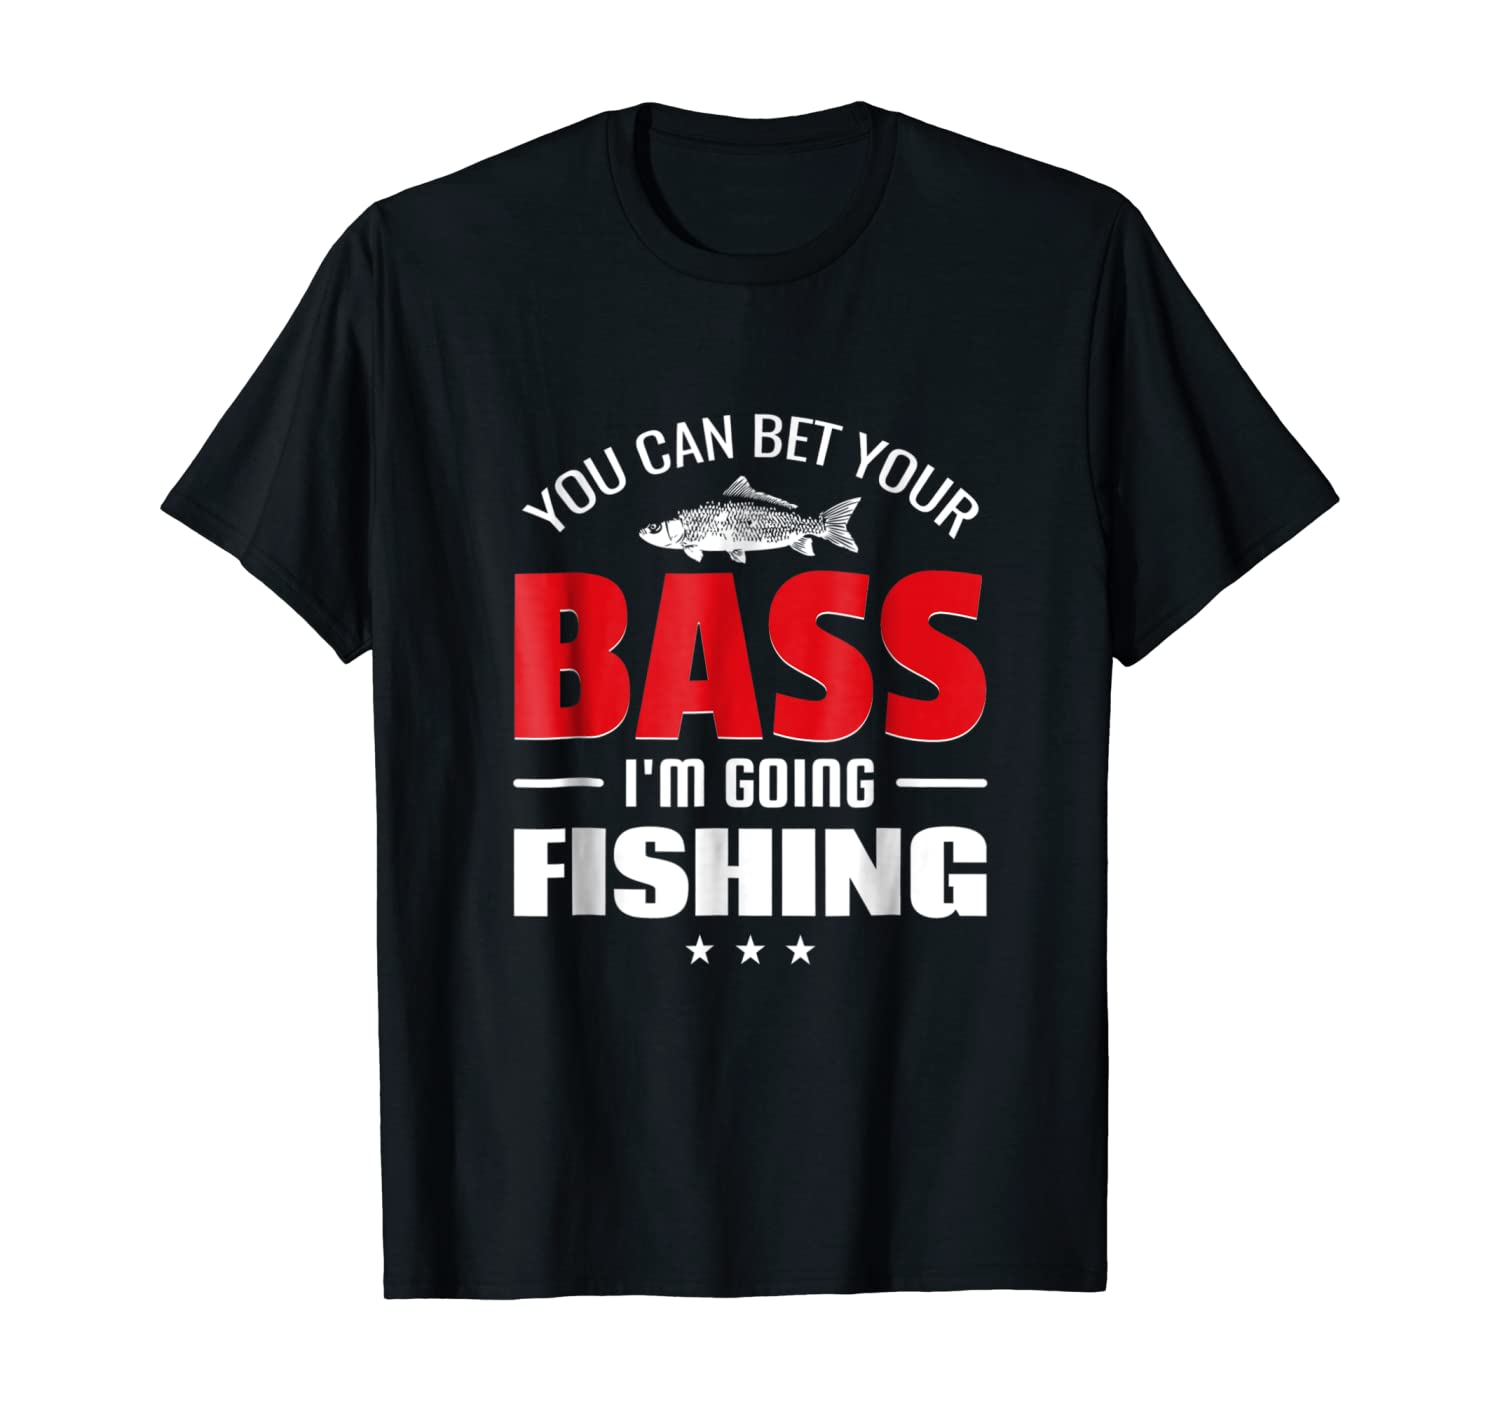 You Can Bet Your Bass I'm Going Fishing Funny Shirts